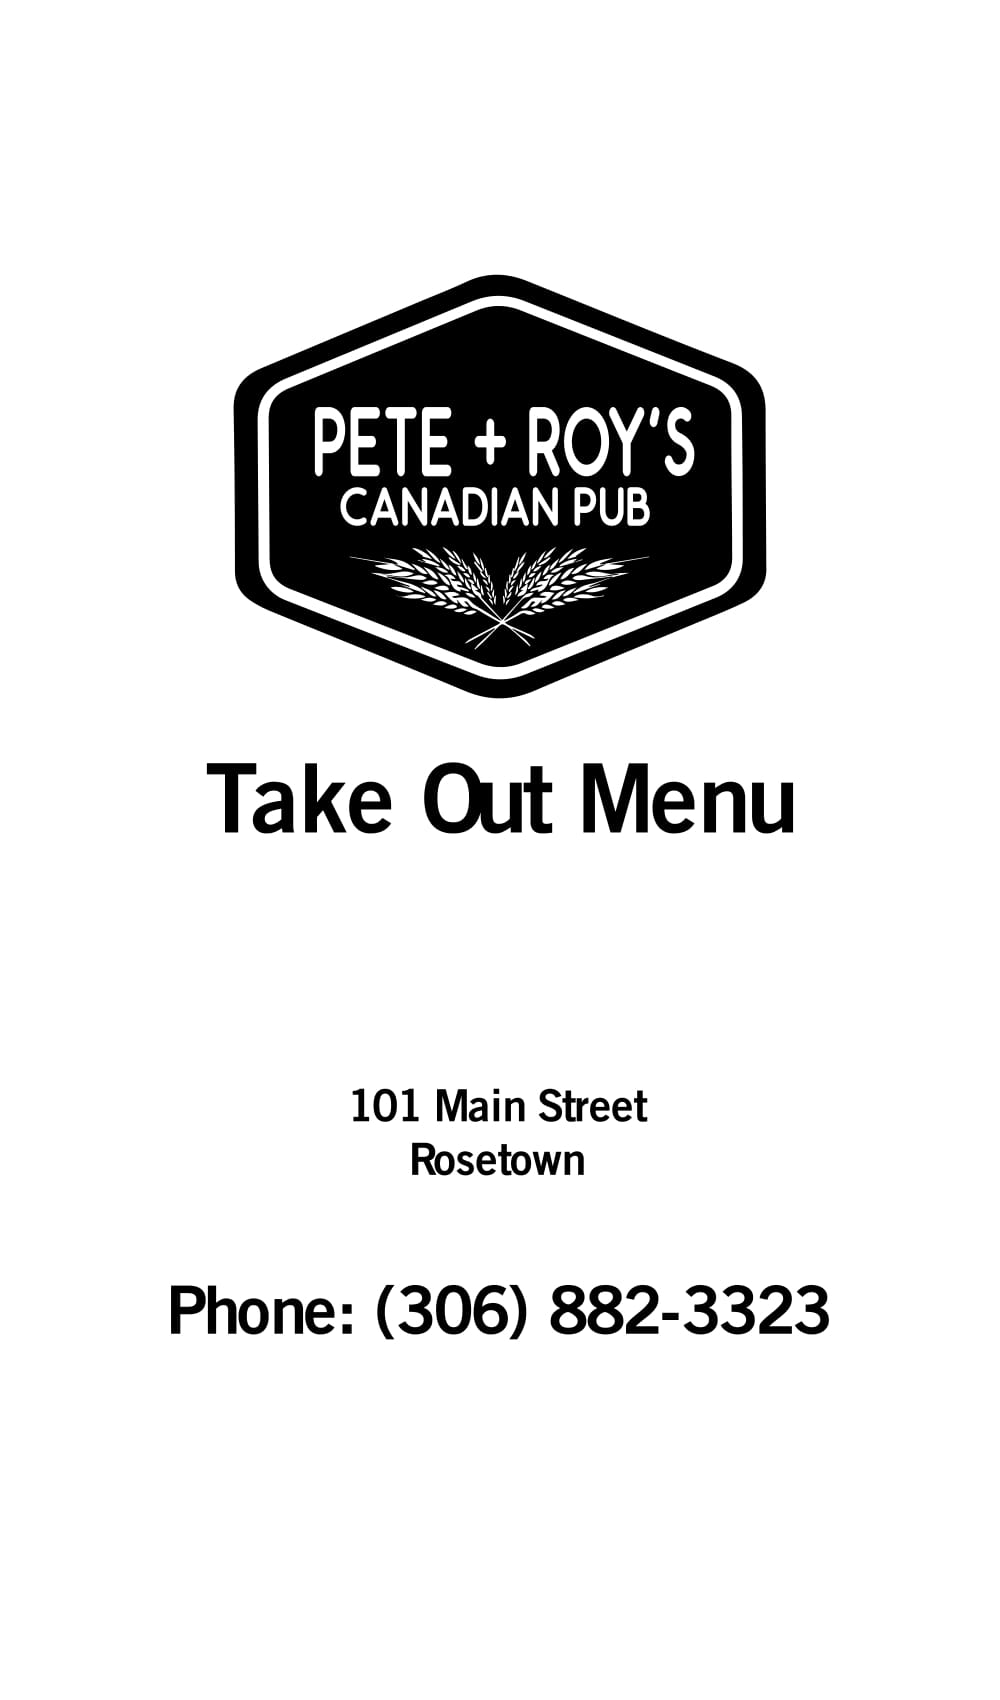 Pete & Roy's Canadian Pub menu